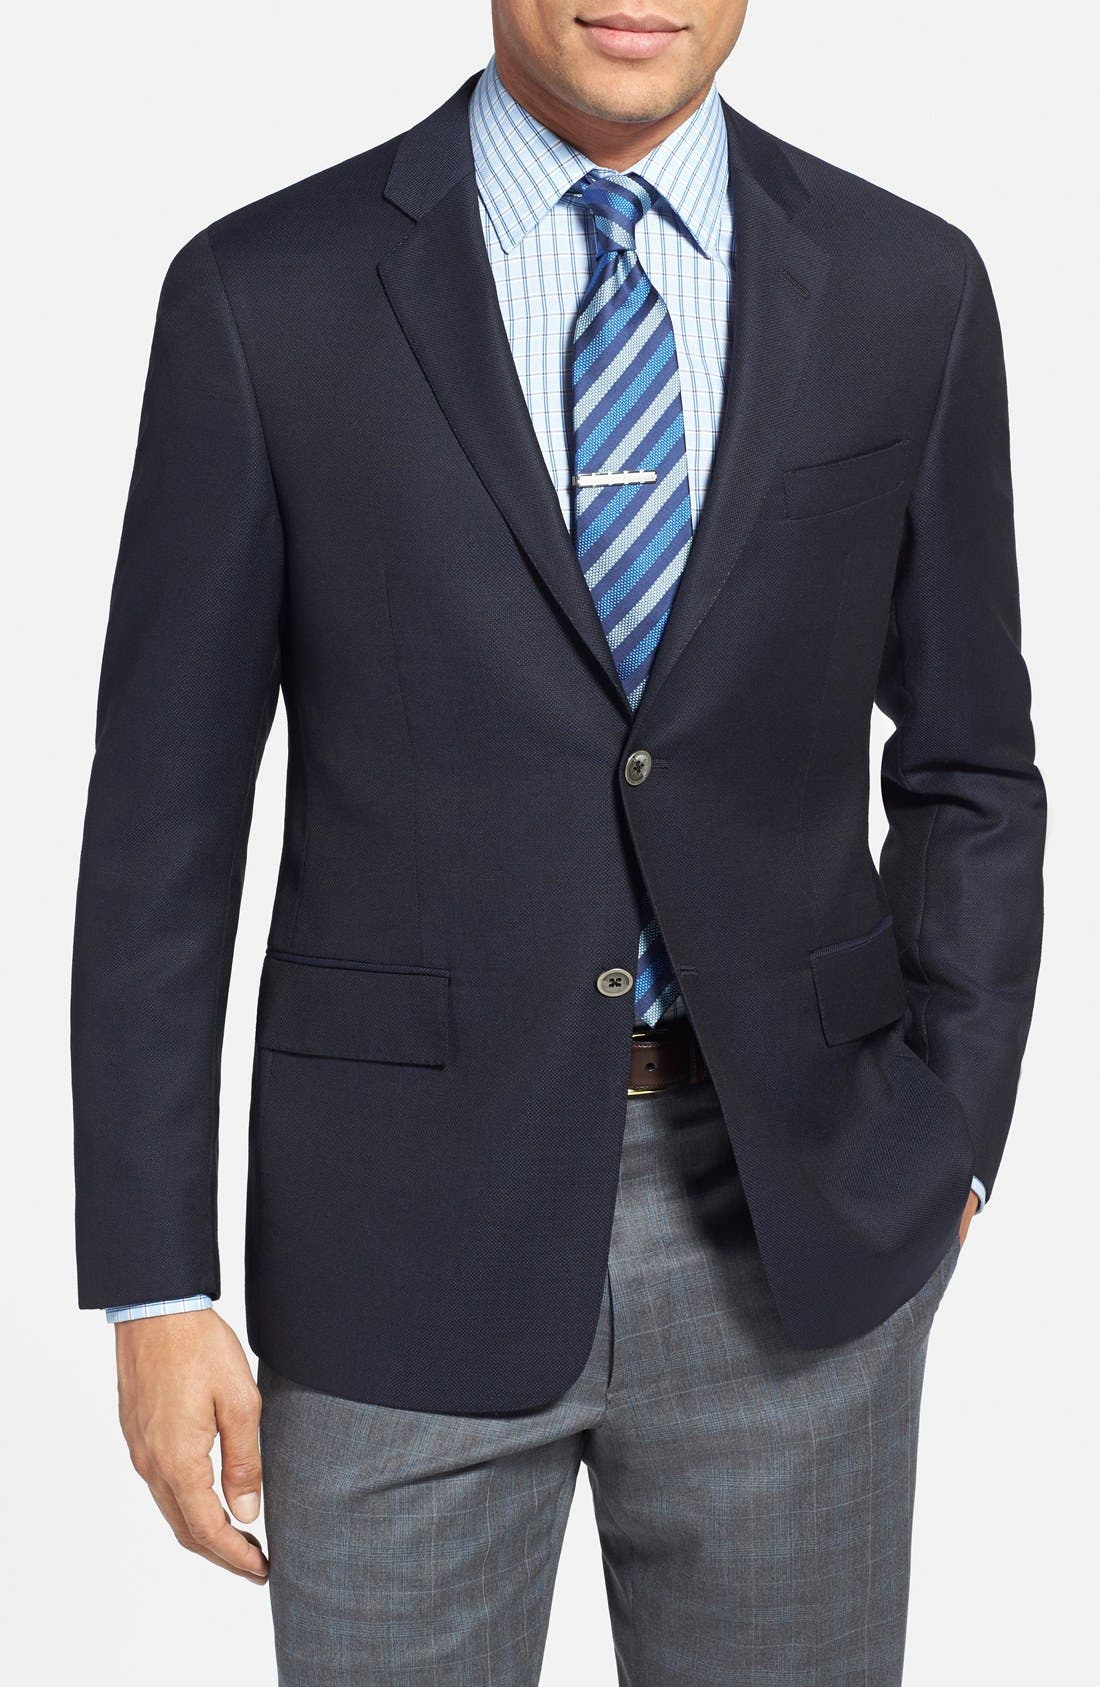 Alternate Image 1 Selected - Todd Snyder 'May Fair' Trim Fit Wool Blazer